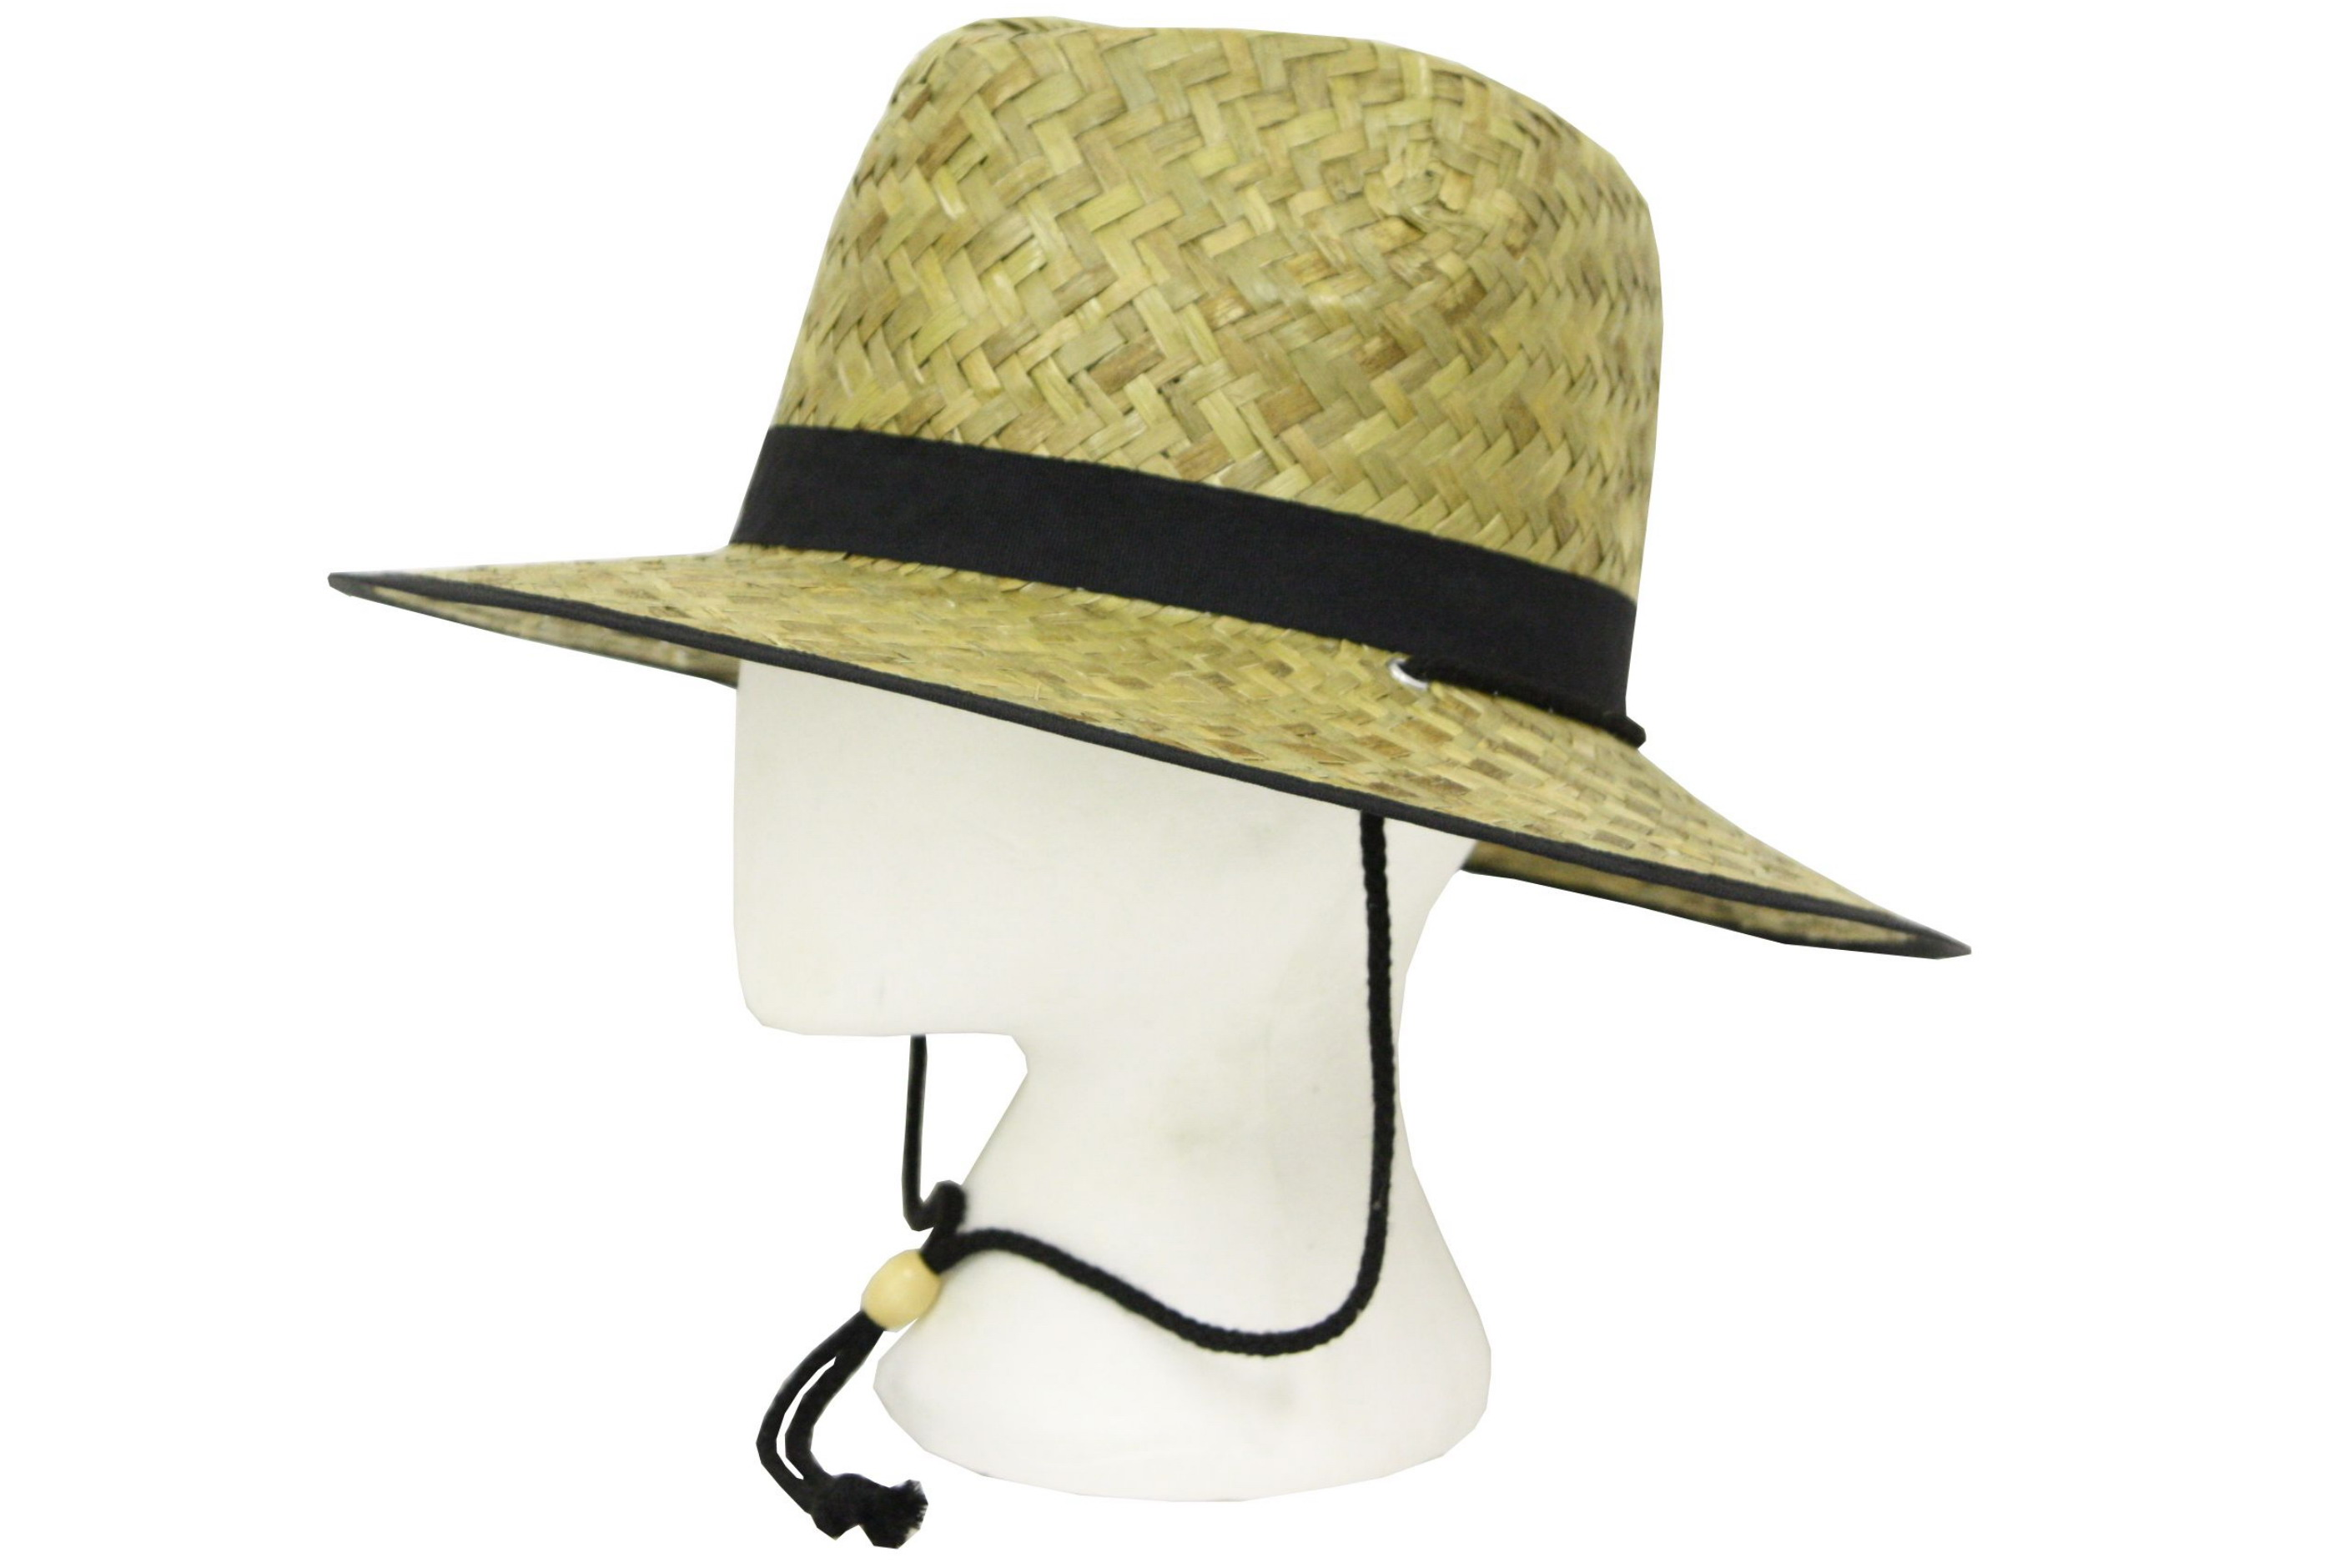 Straw Hat Fedora Style With Band